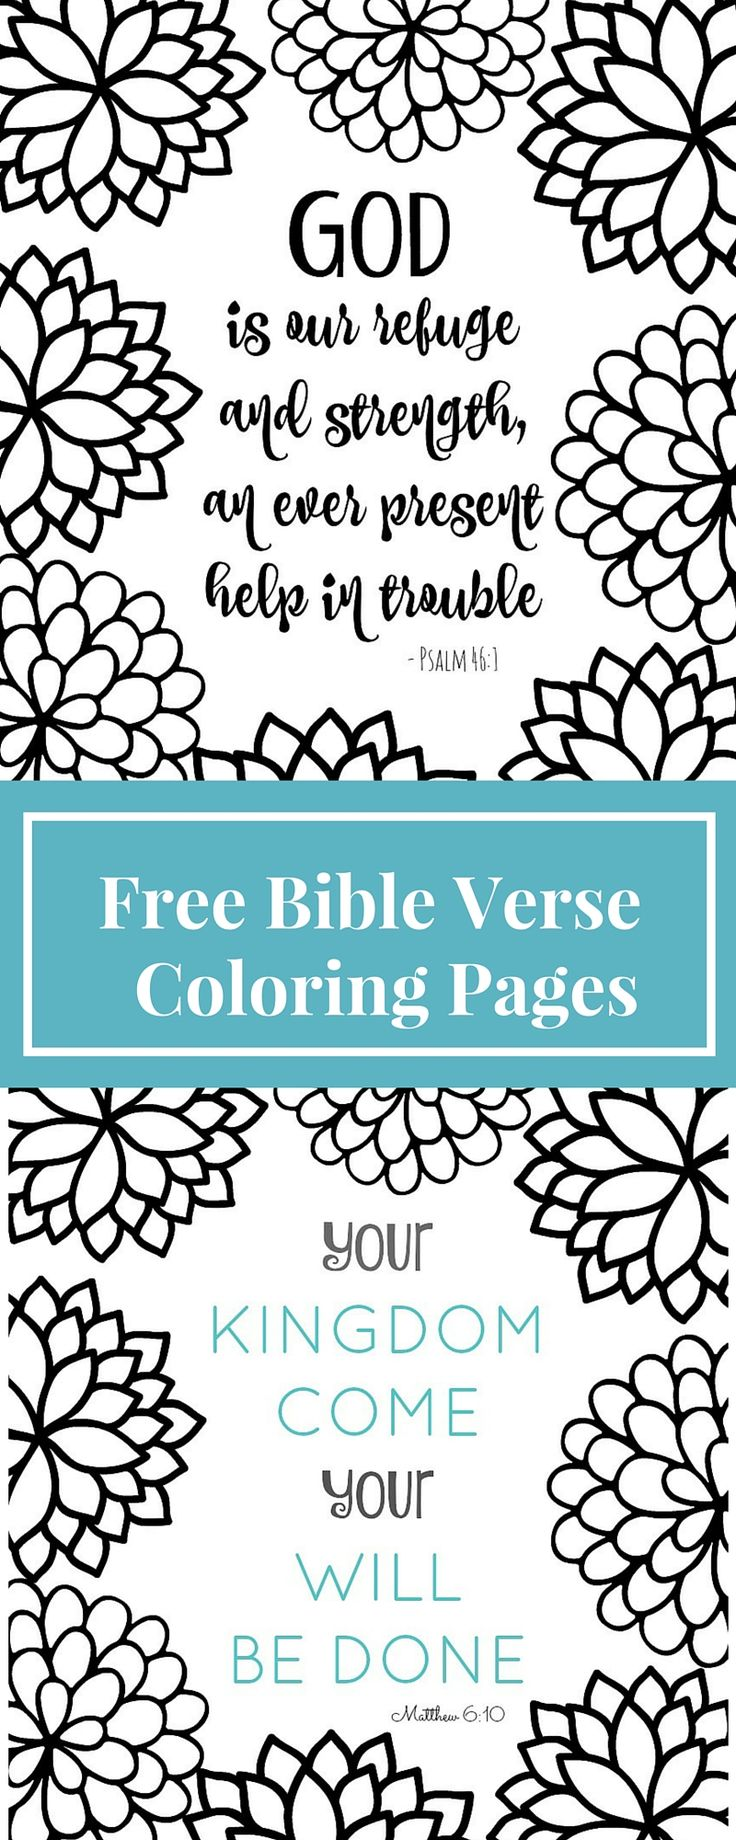 kjv bible verse coloring pages - photo#19